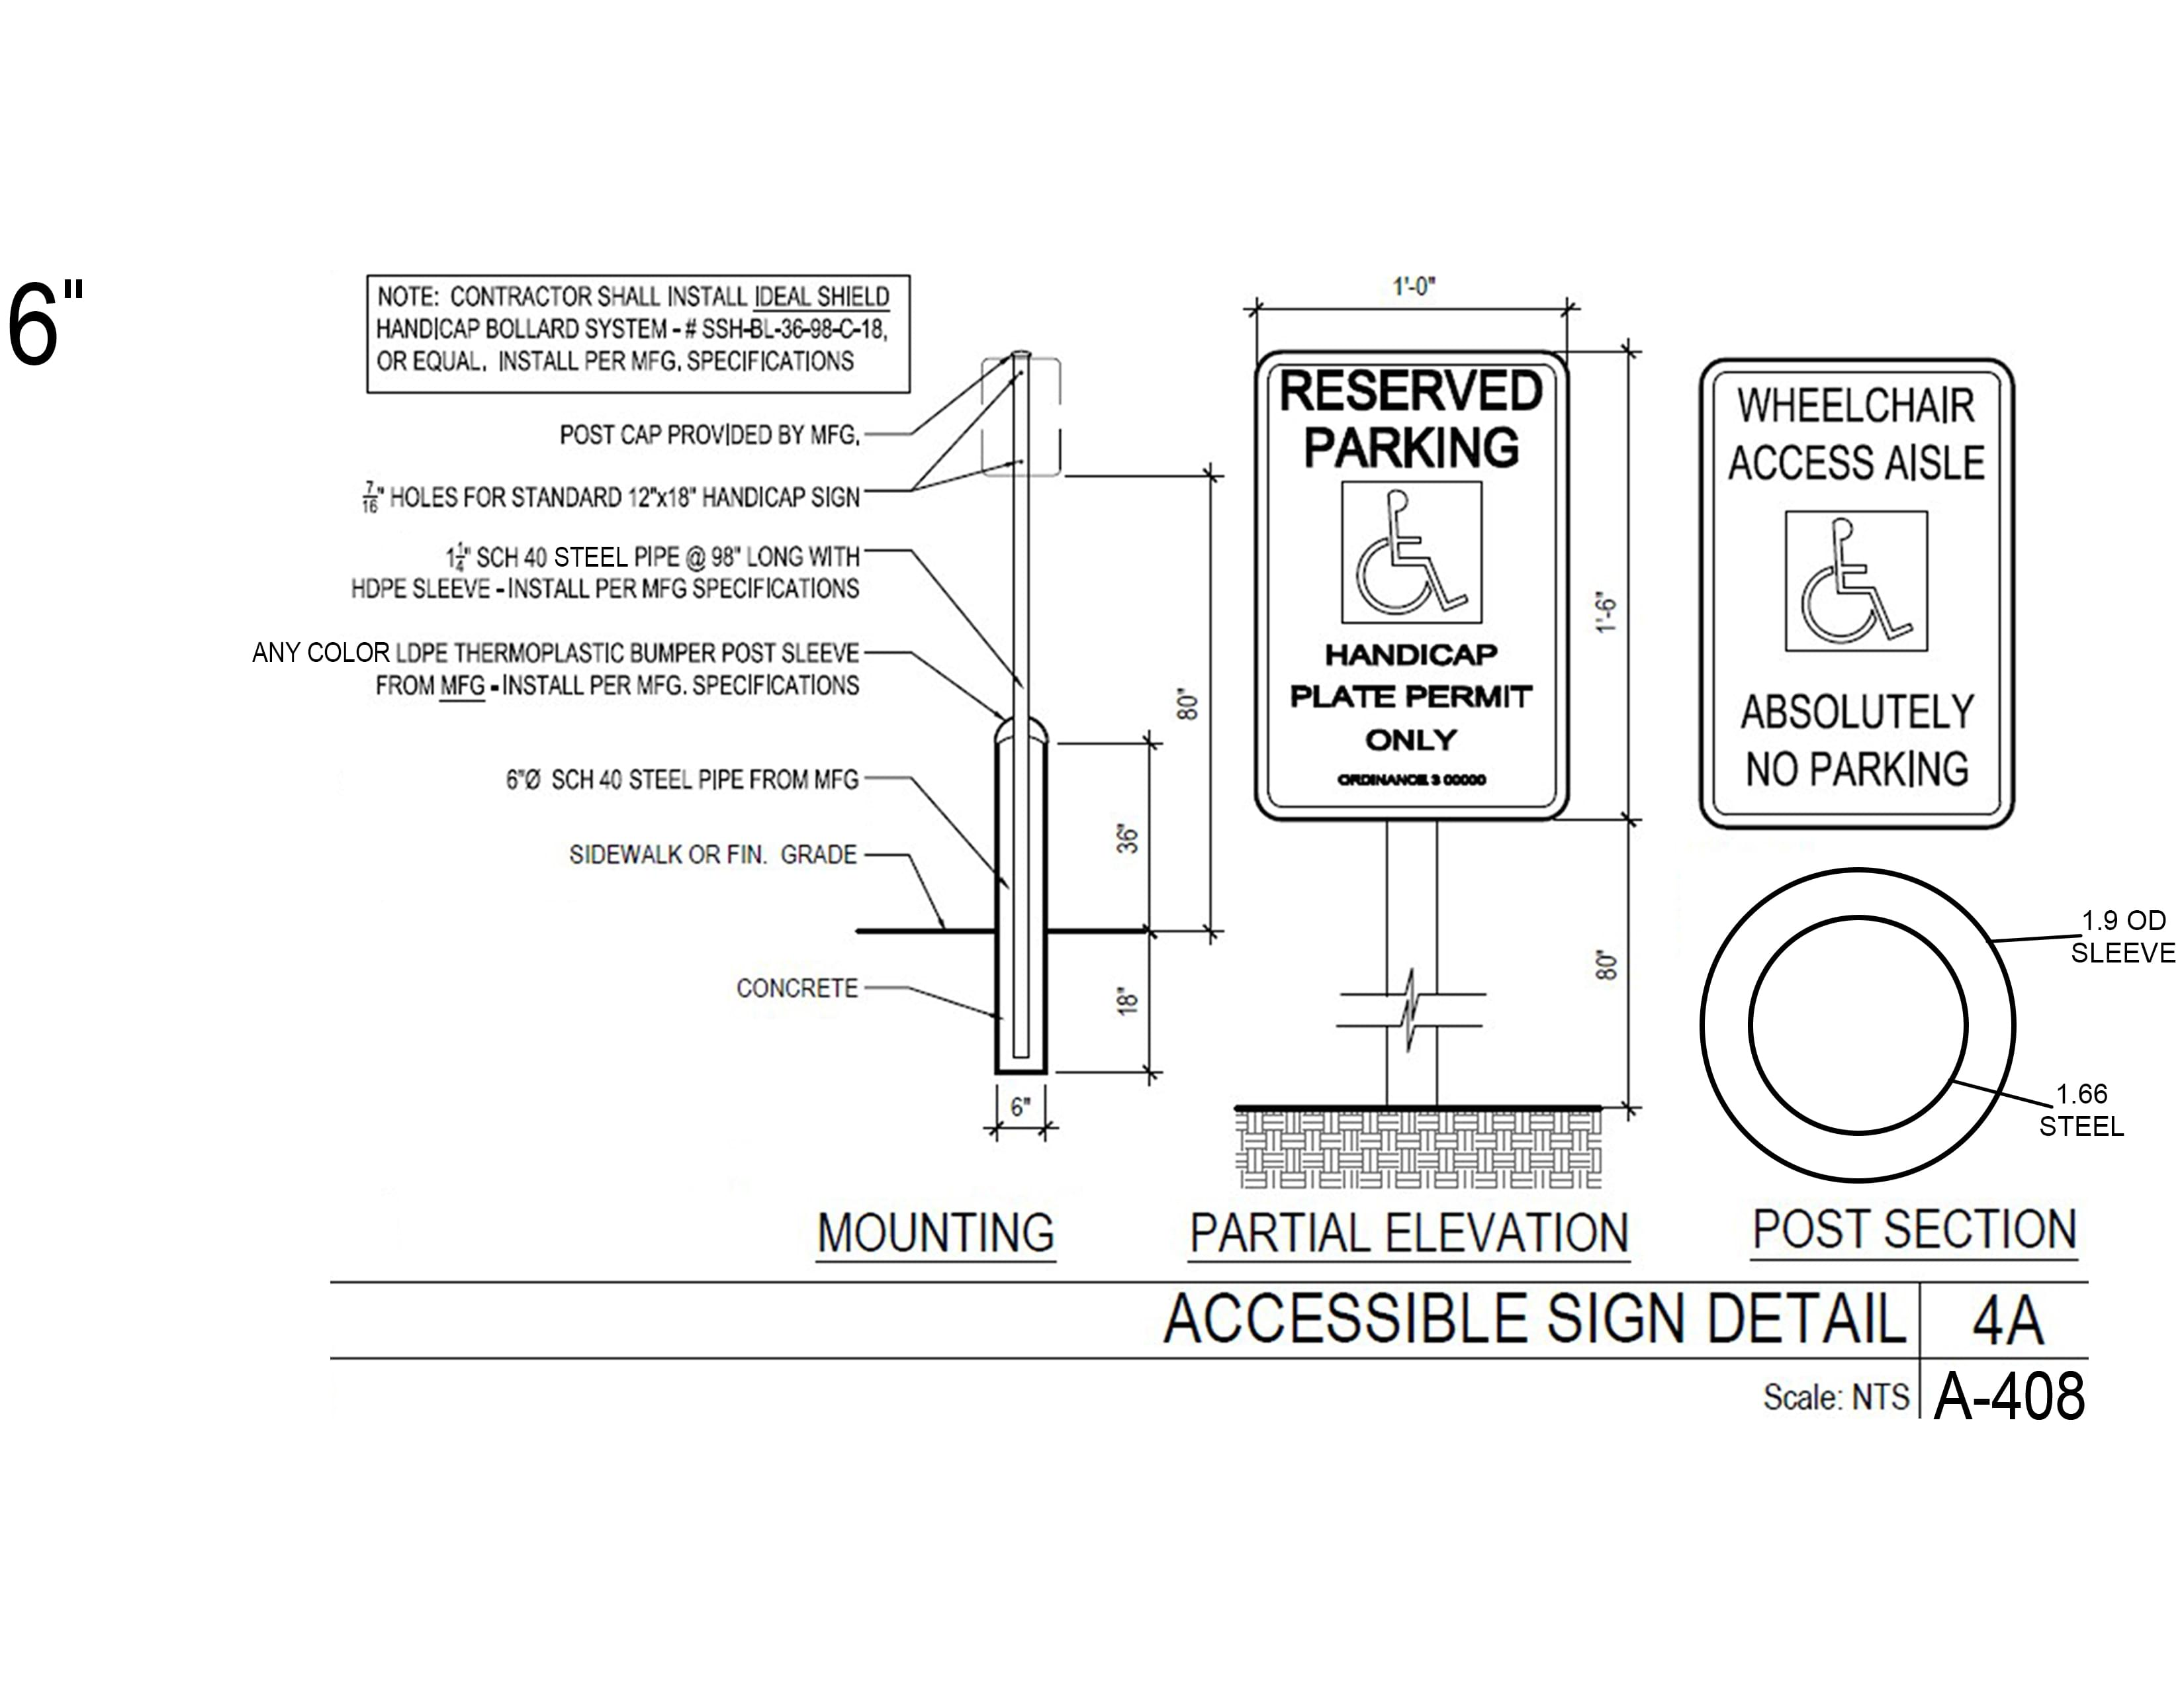 Bollard Sign System Maintenance Free Ideal Shield